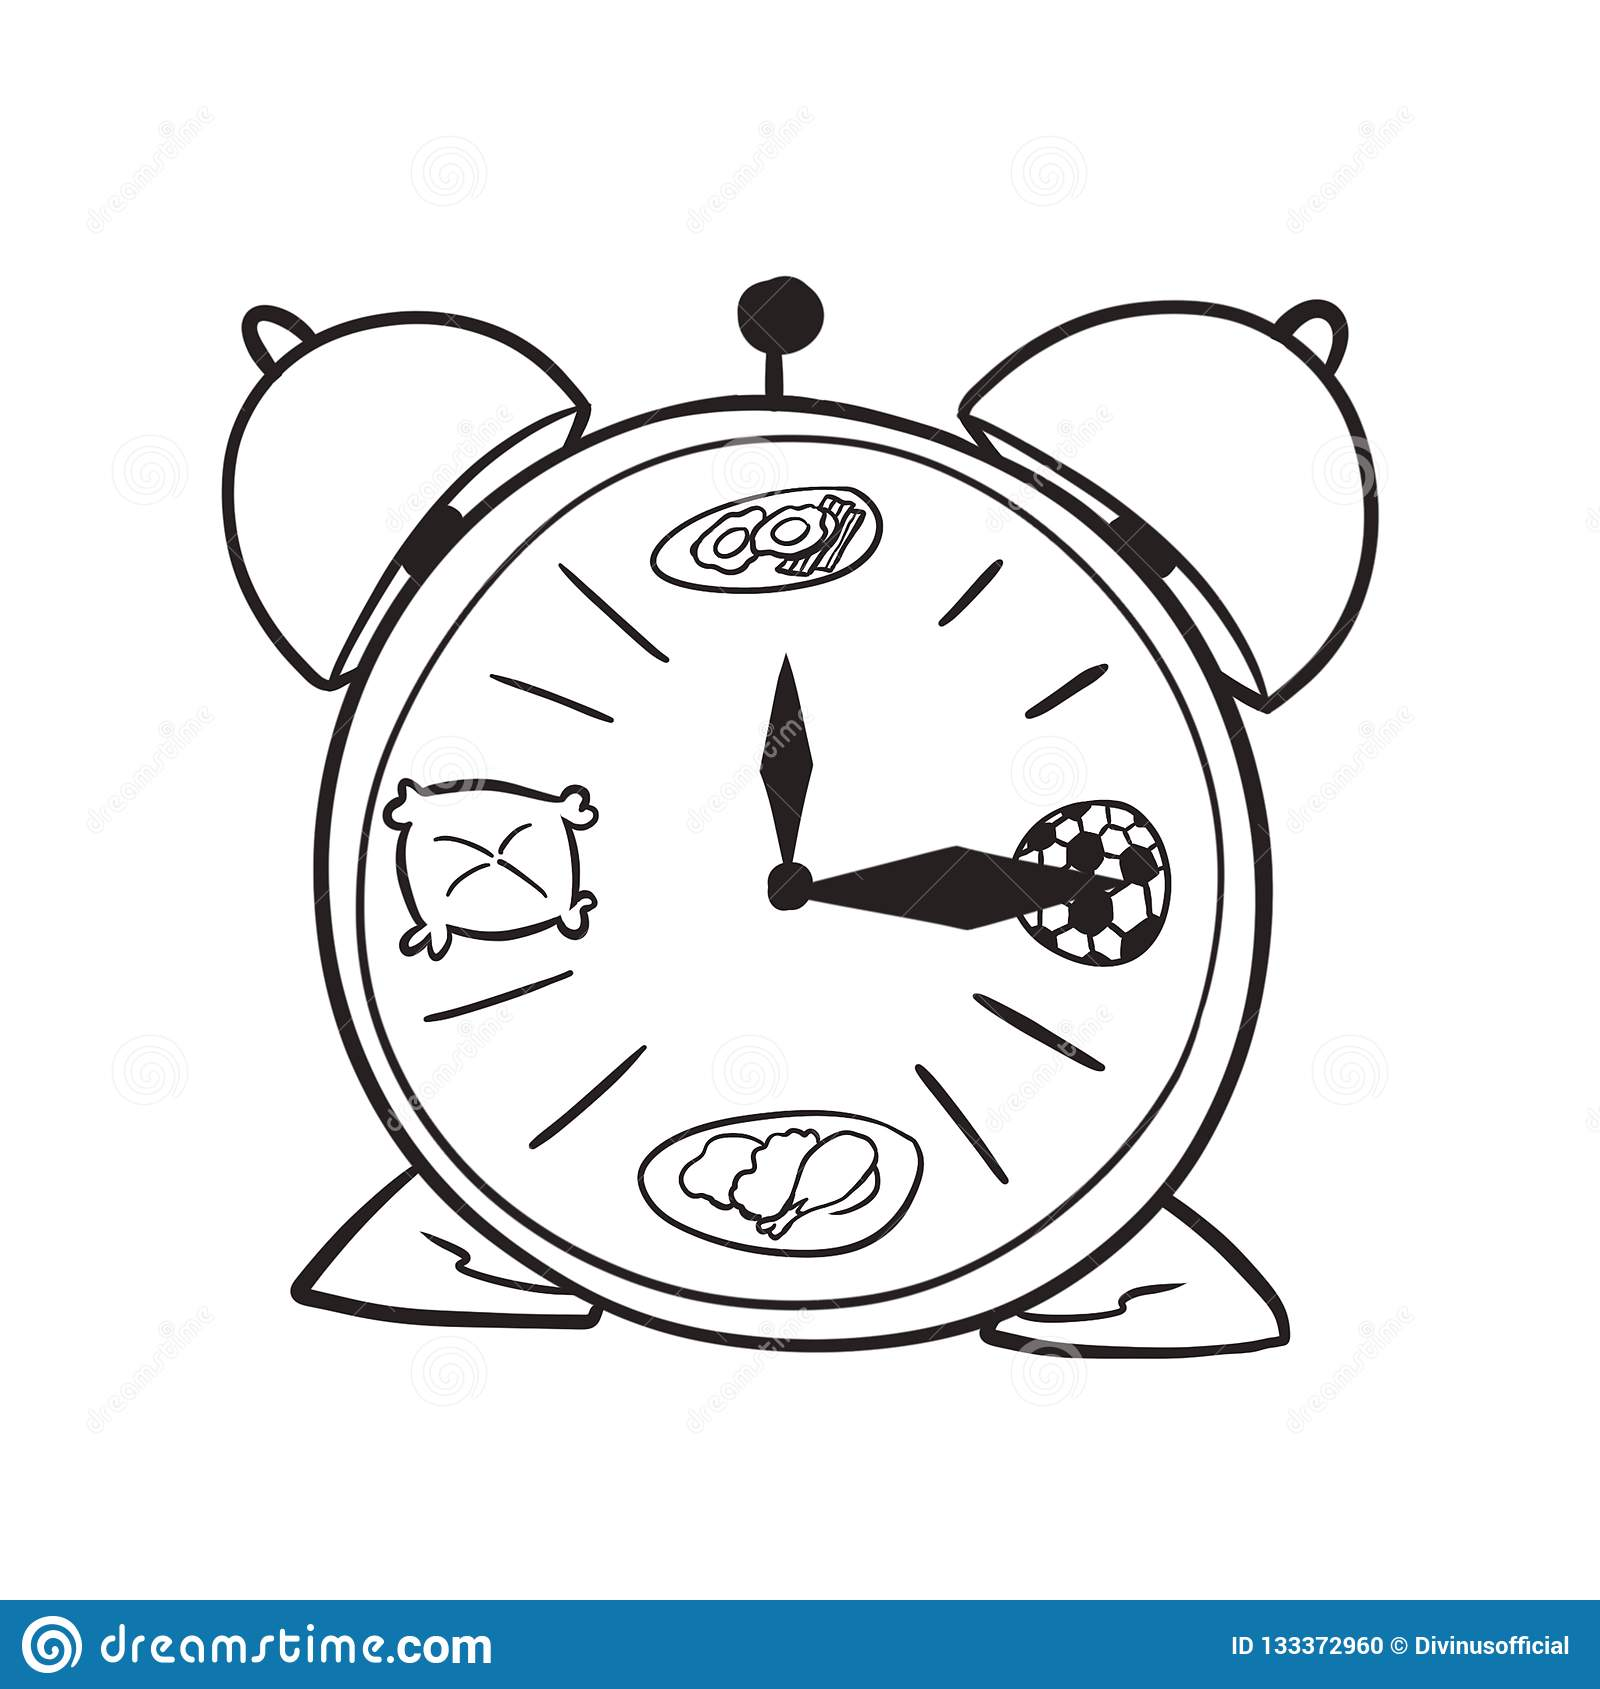 Coloring Page Of A Clic Clock